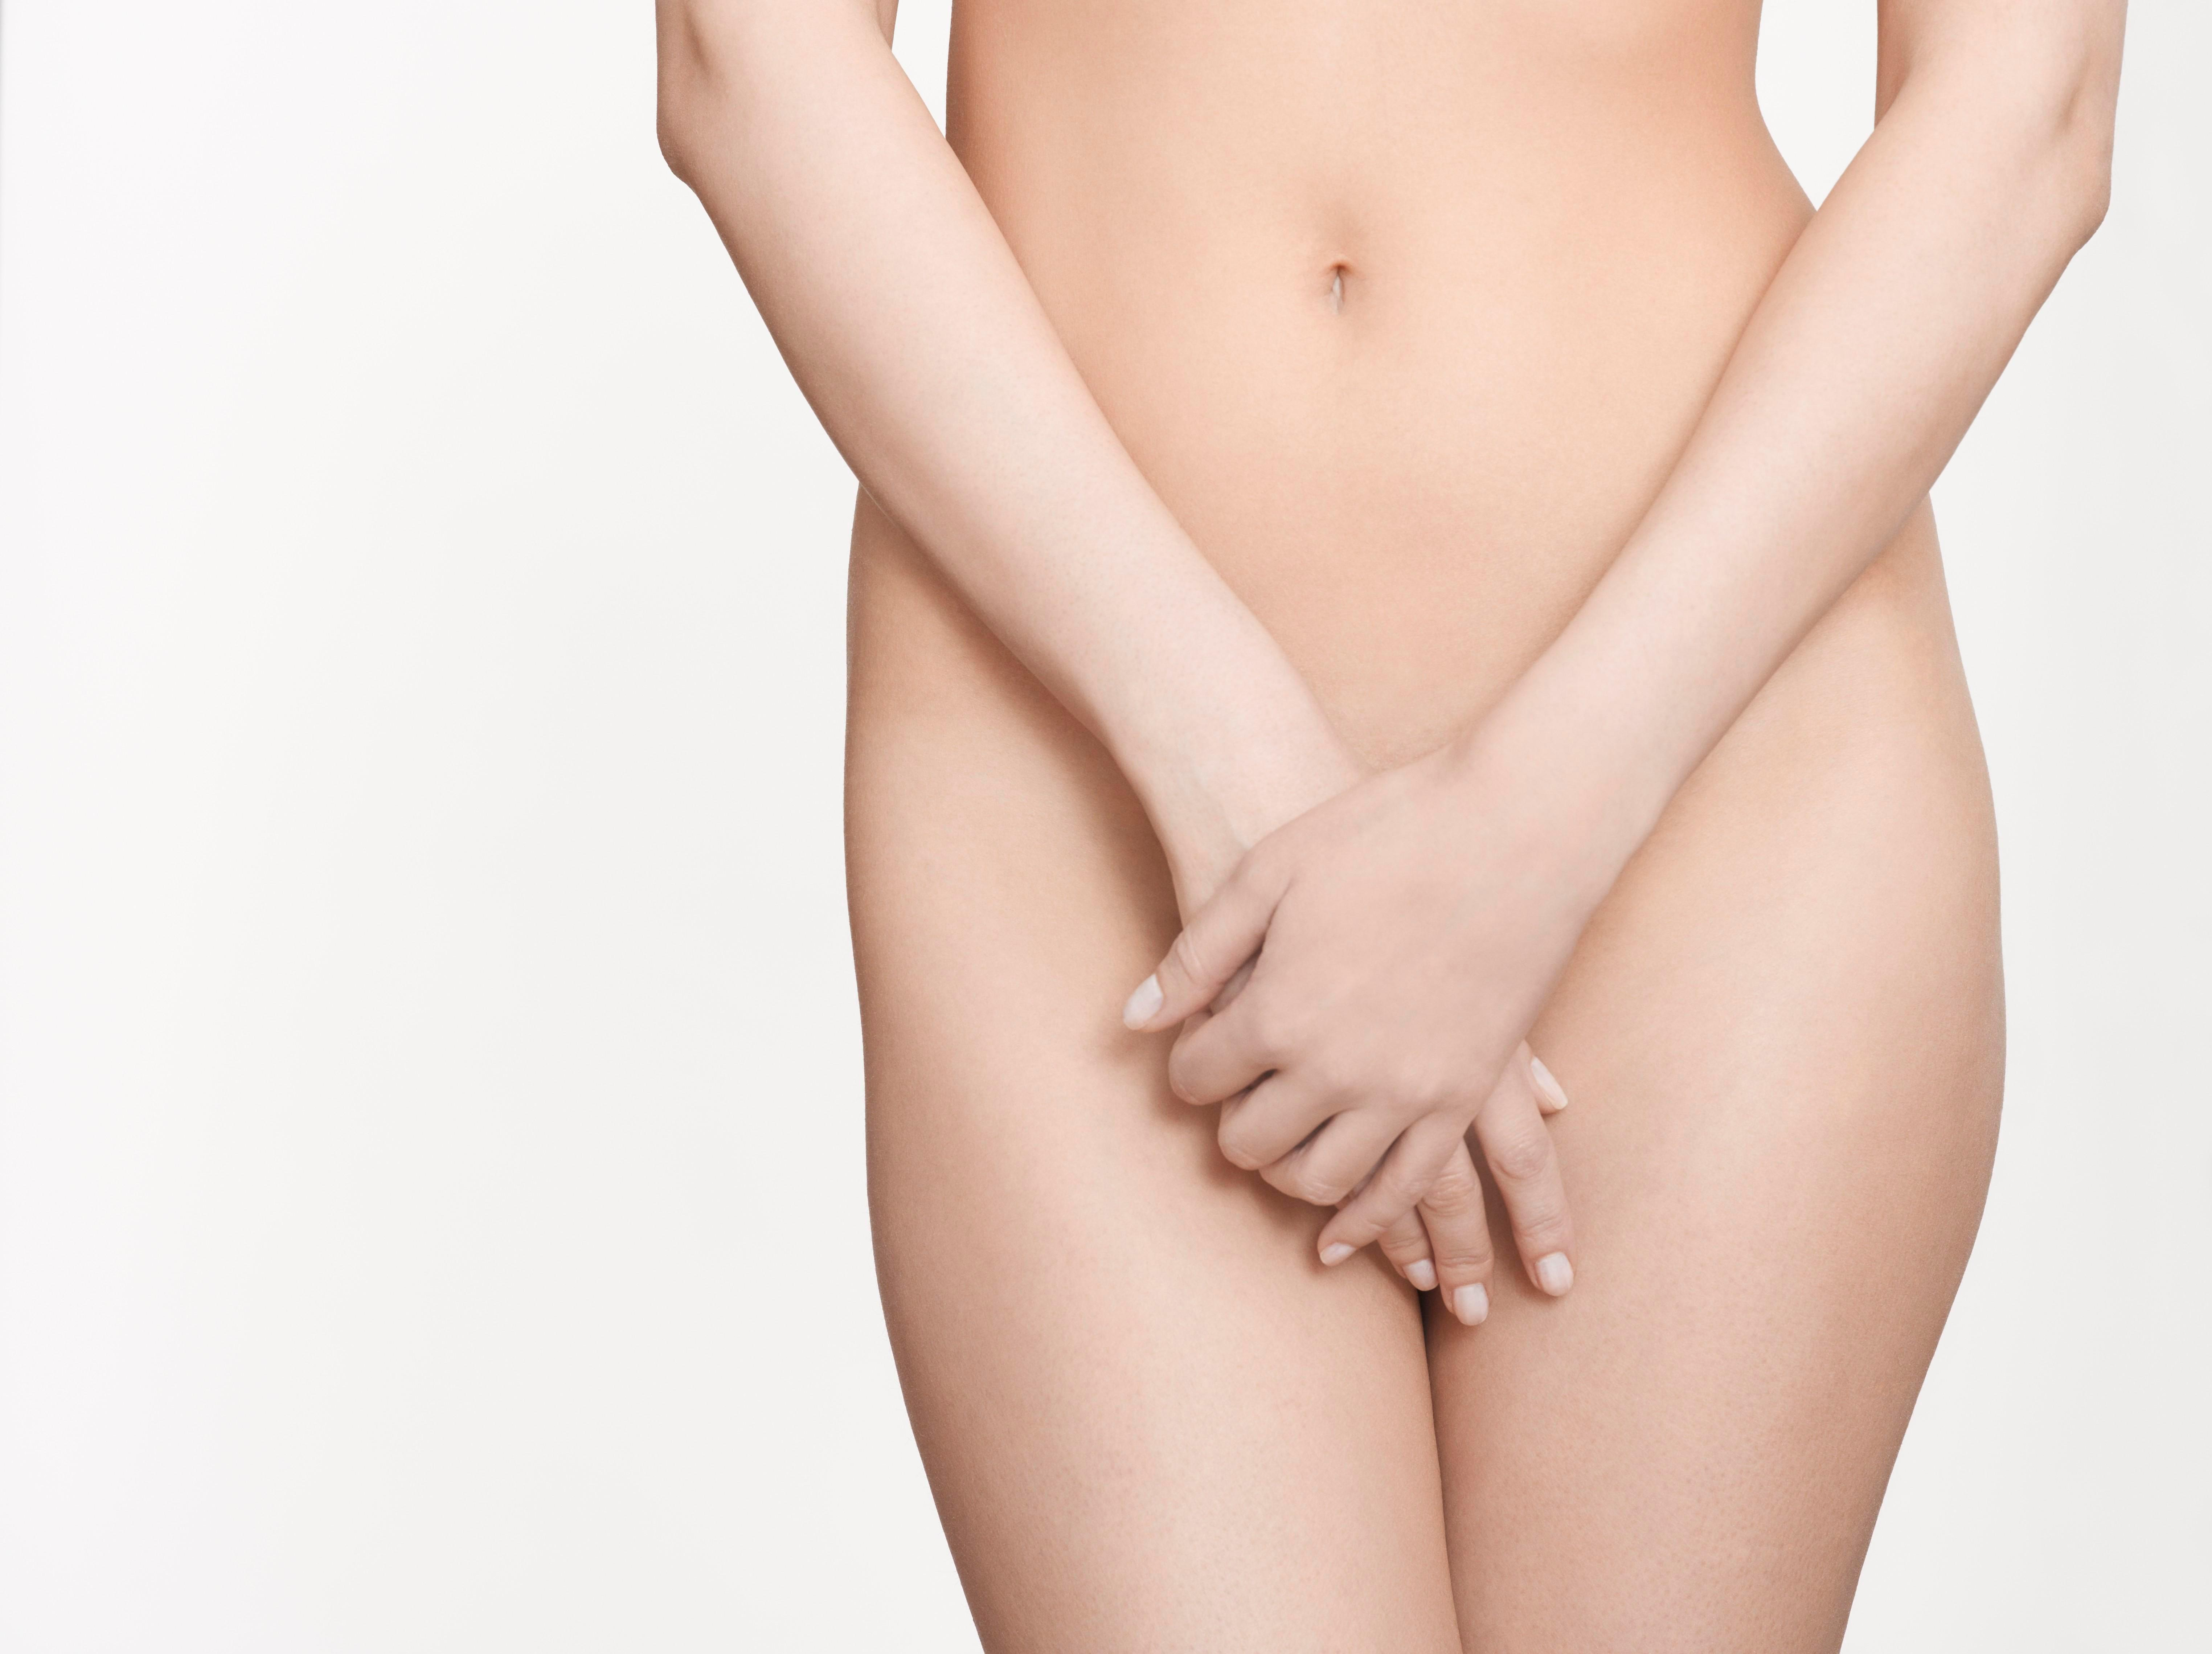 Do you know your Luv Me from your Edgy Mojo? Experts reveal the hottest bikini wax trends of the summer